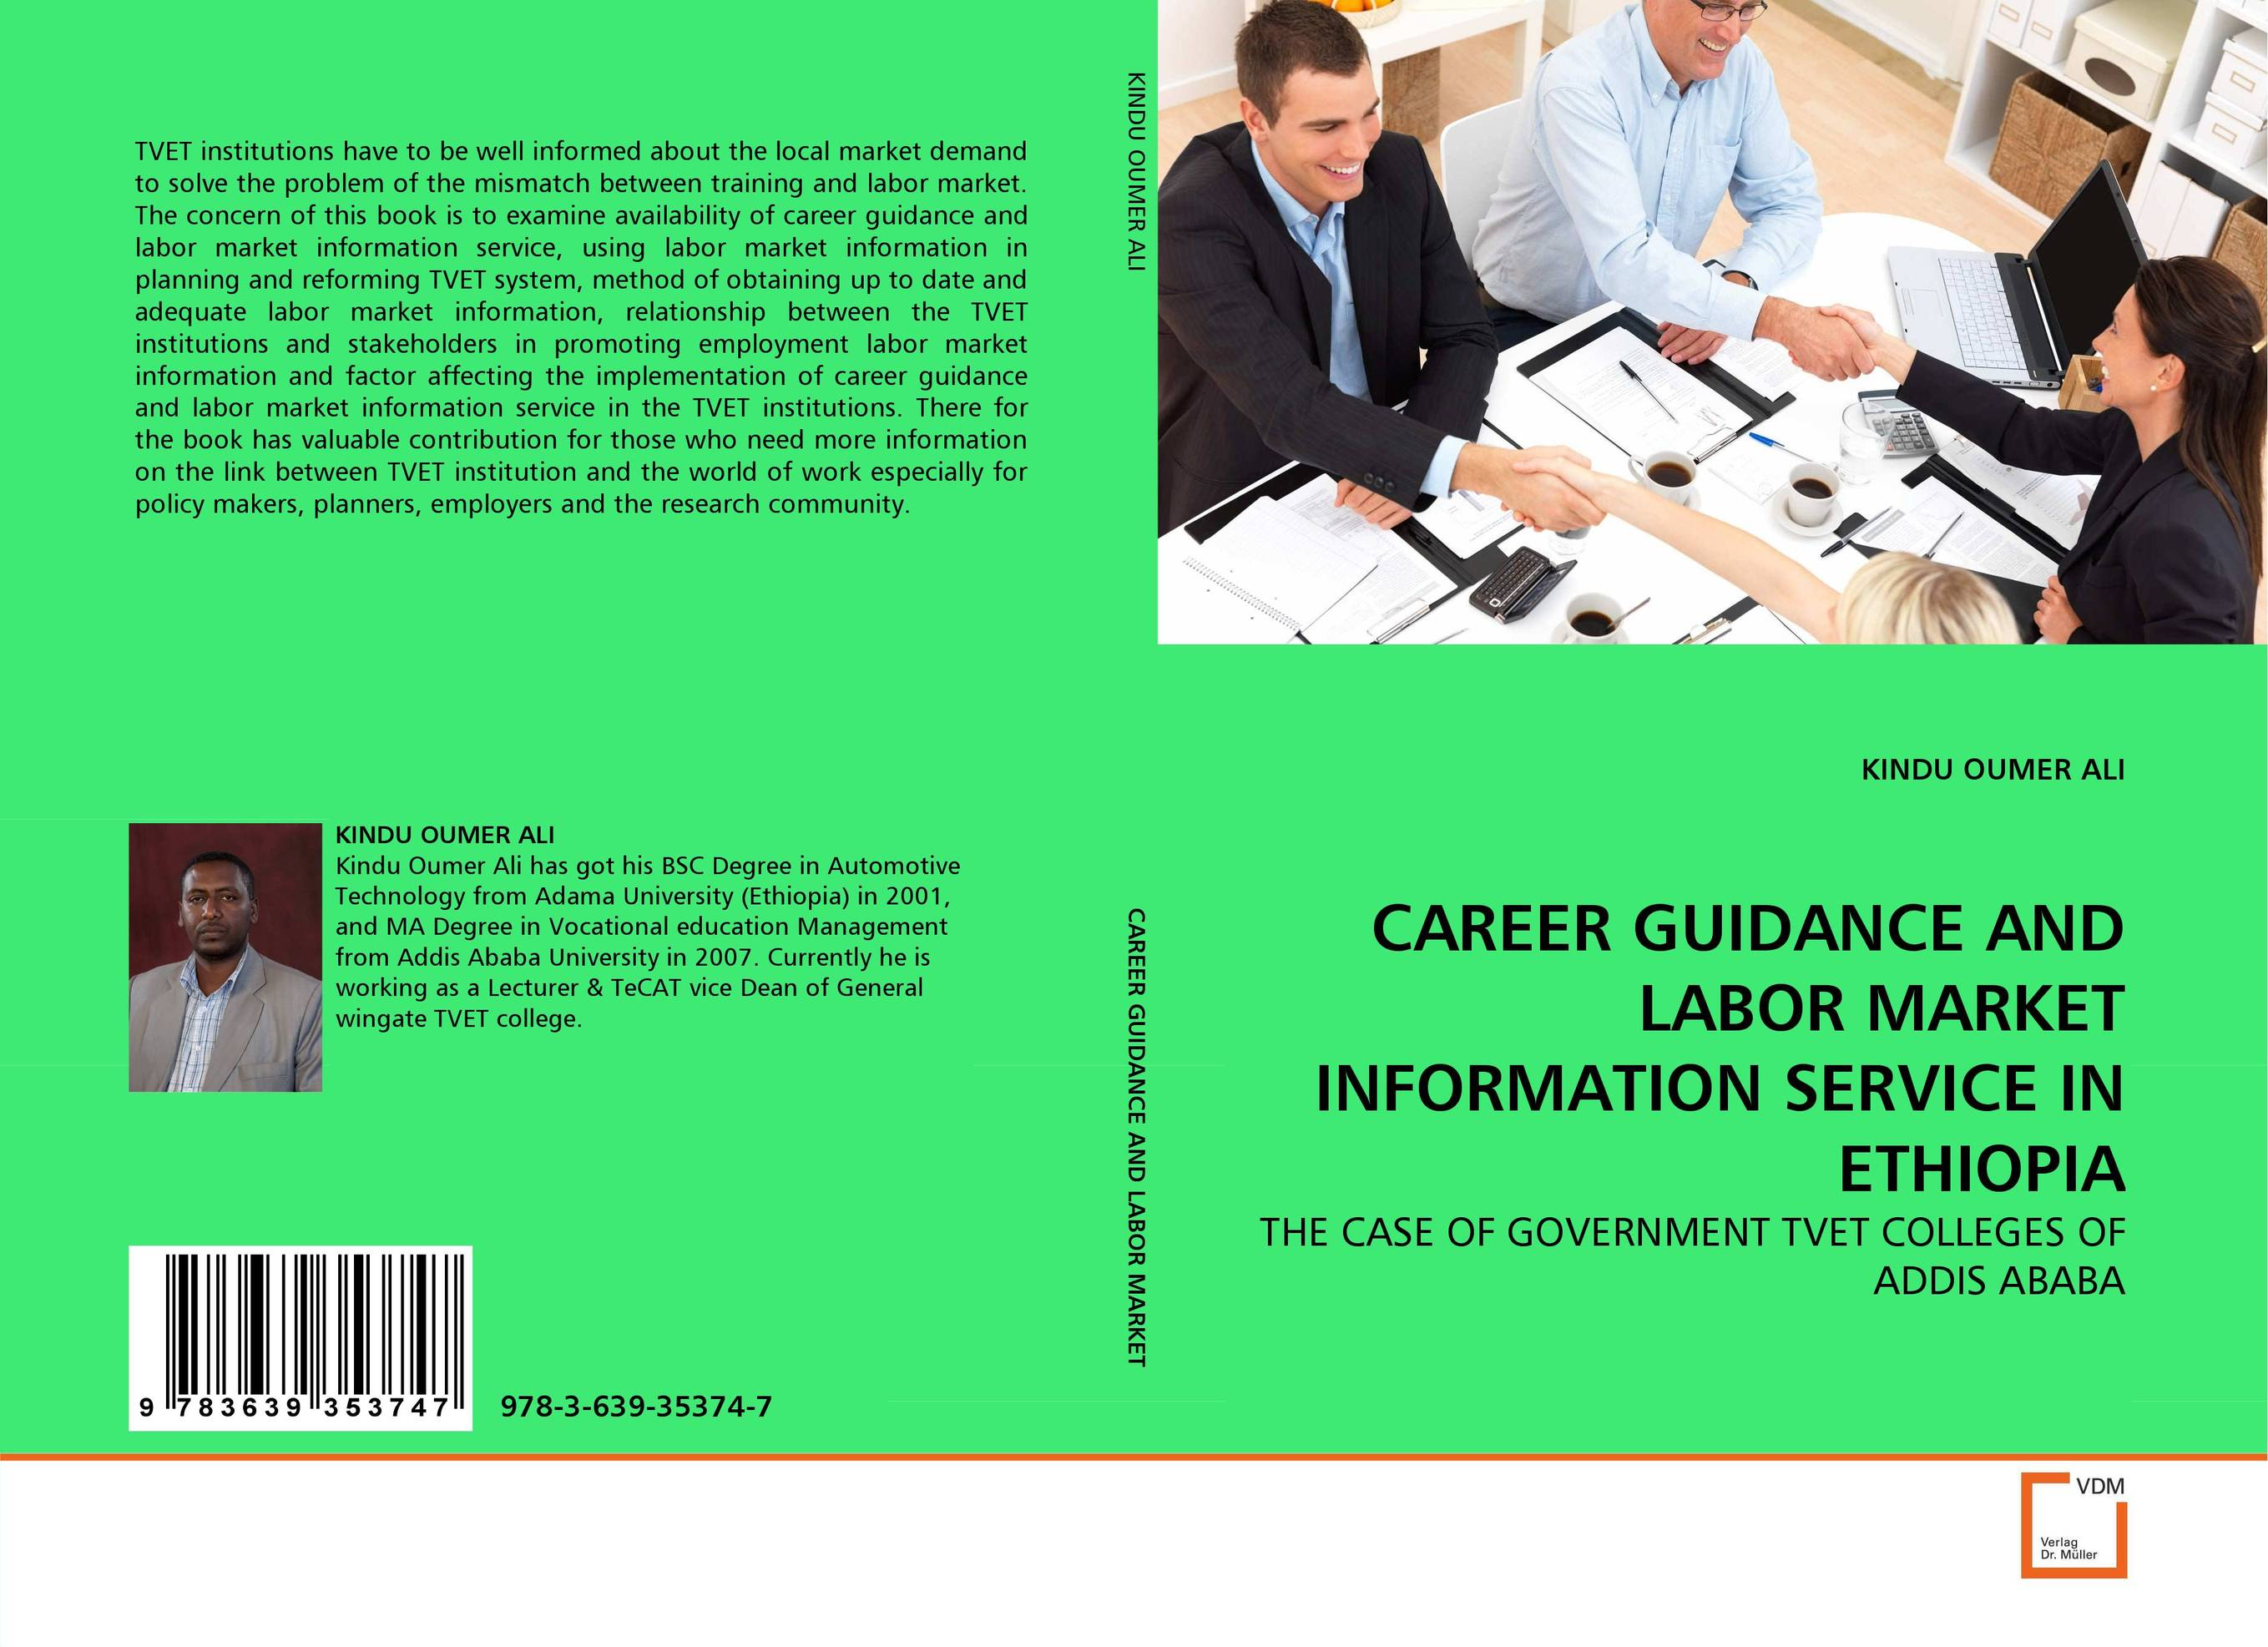 CAREER GUIDANCE AND LABOR MARKET INFORMATION SERVICE IN ETHIOPIA